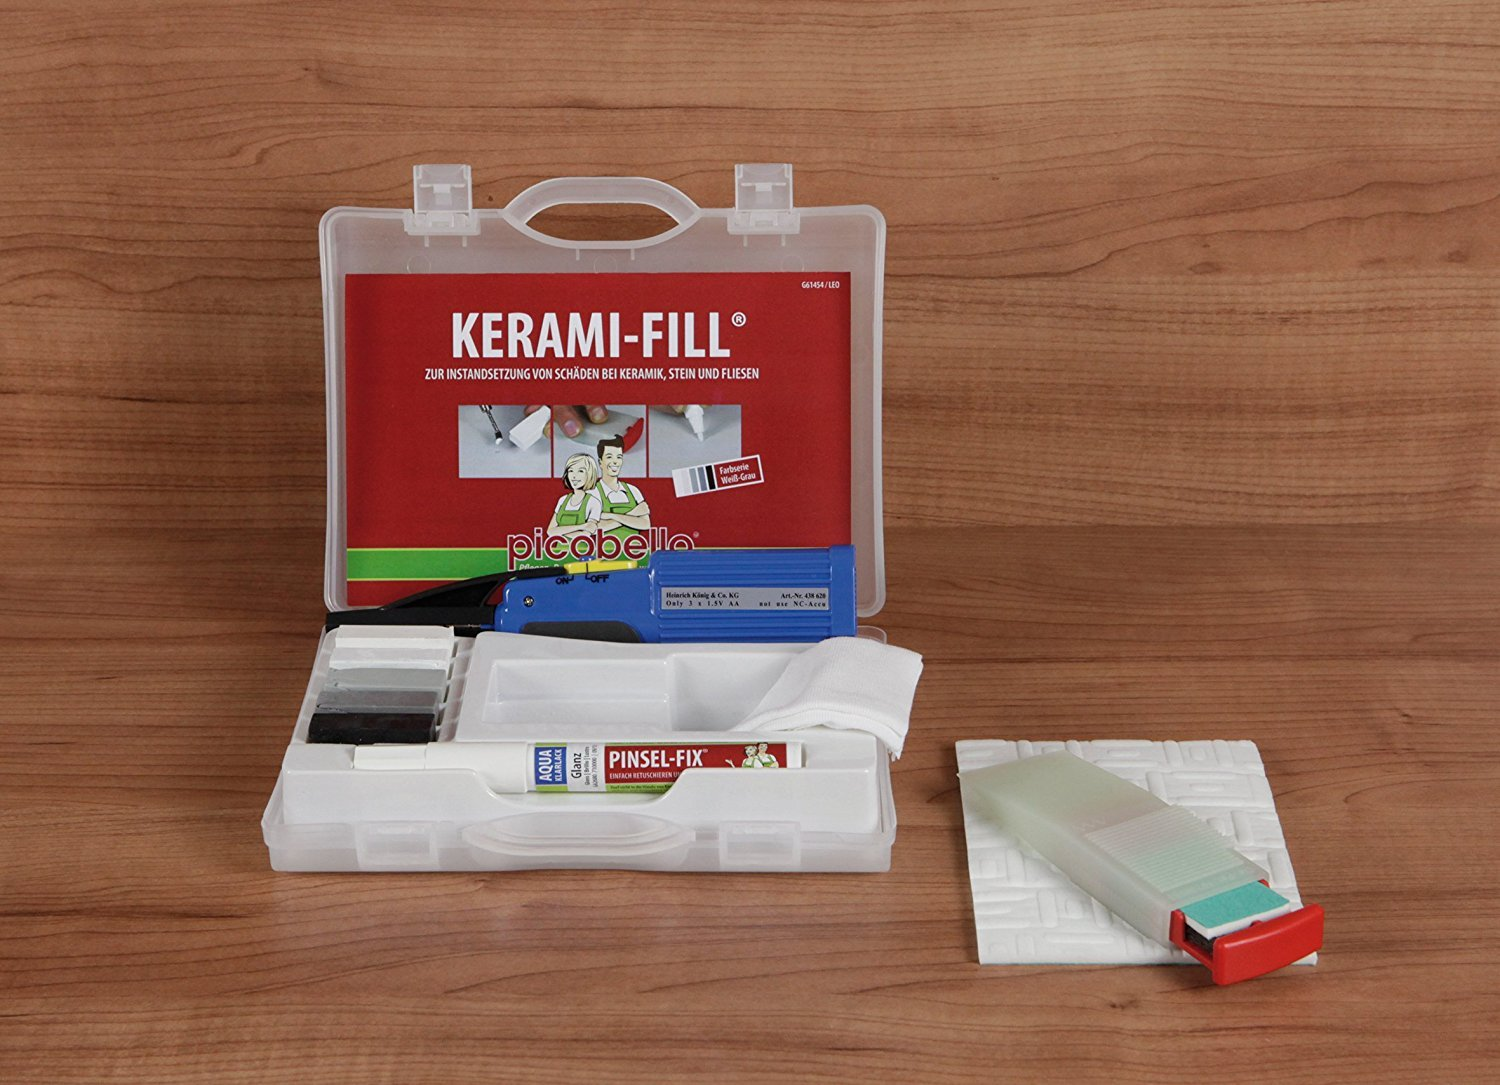 Picobello ceramic tile repair kit whitegrey by konig amazon dailygadgetfo Gallery